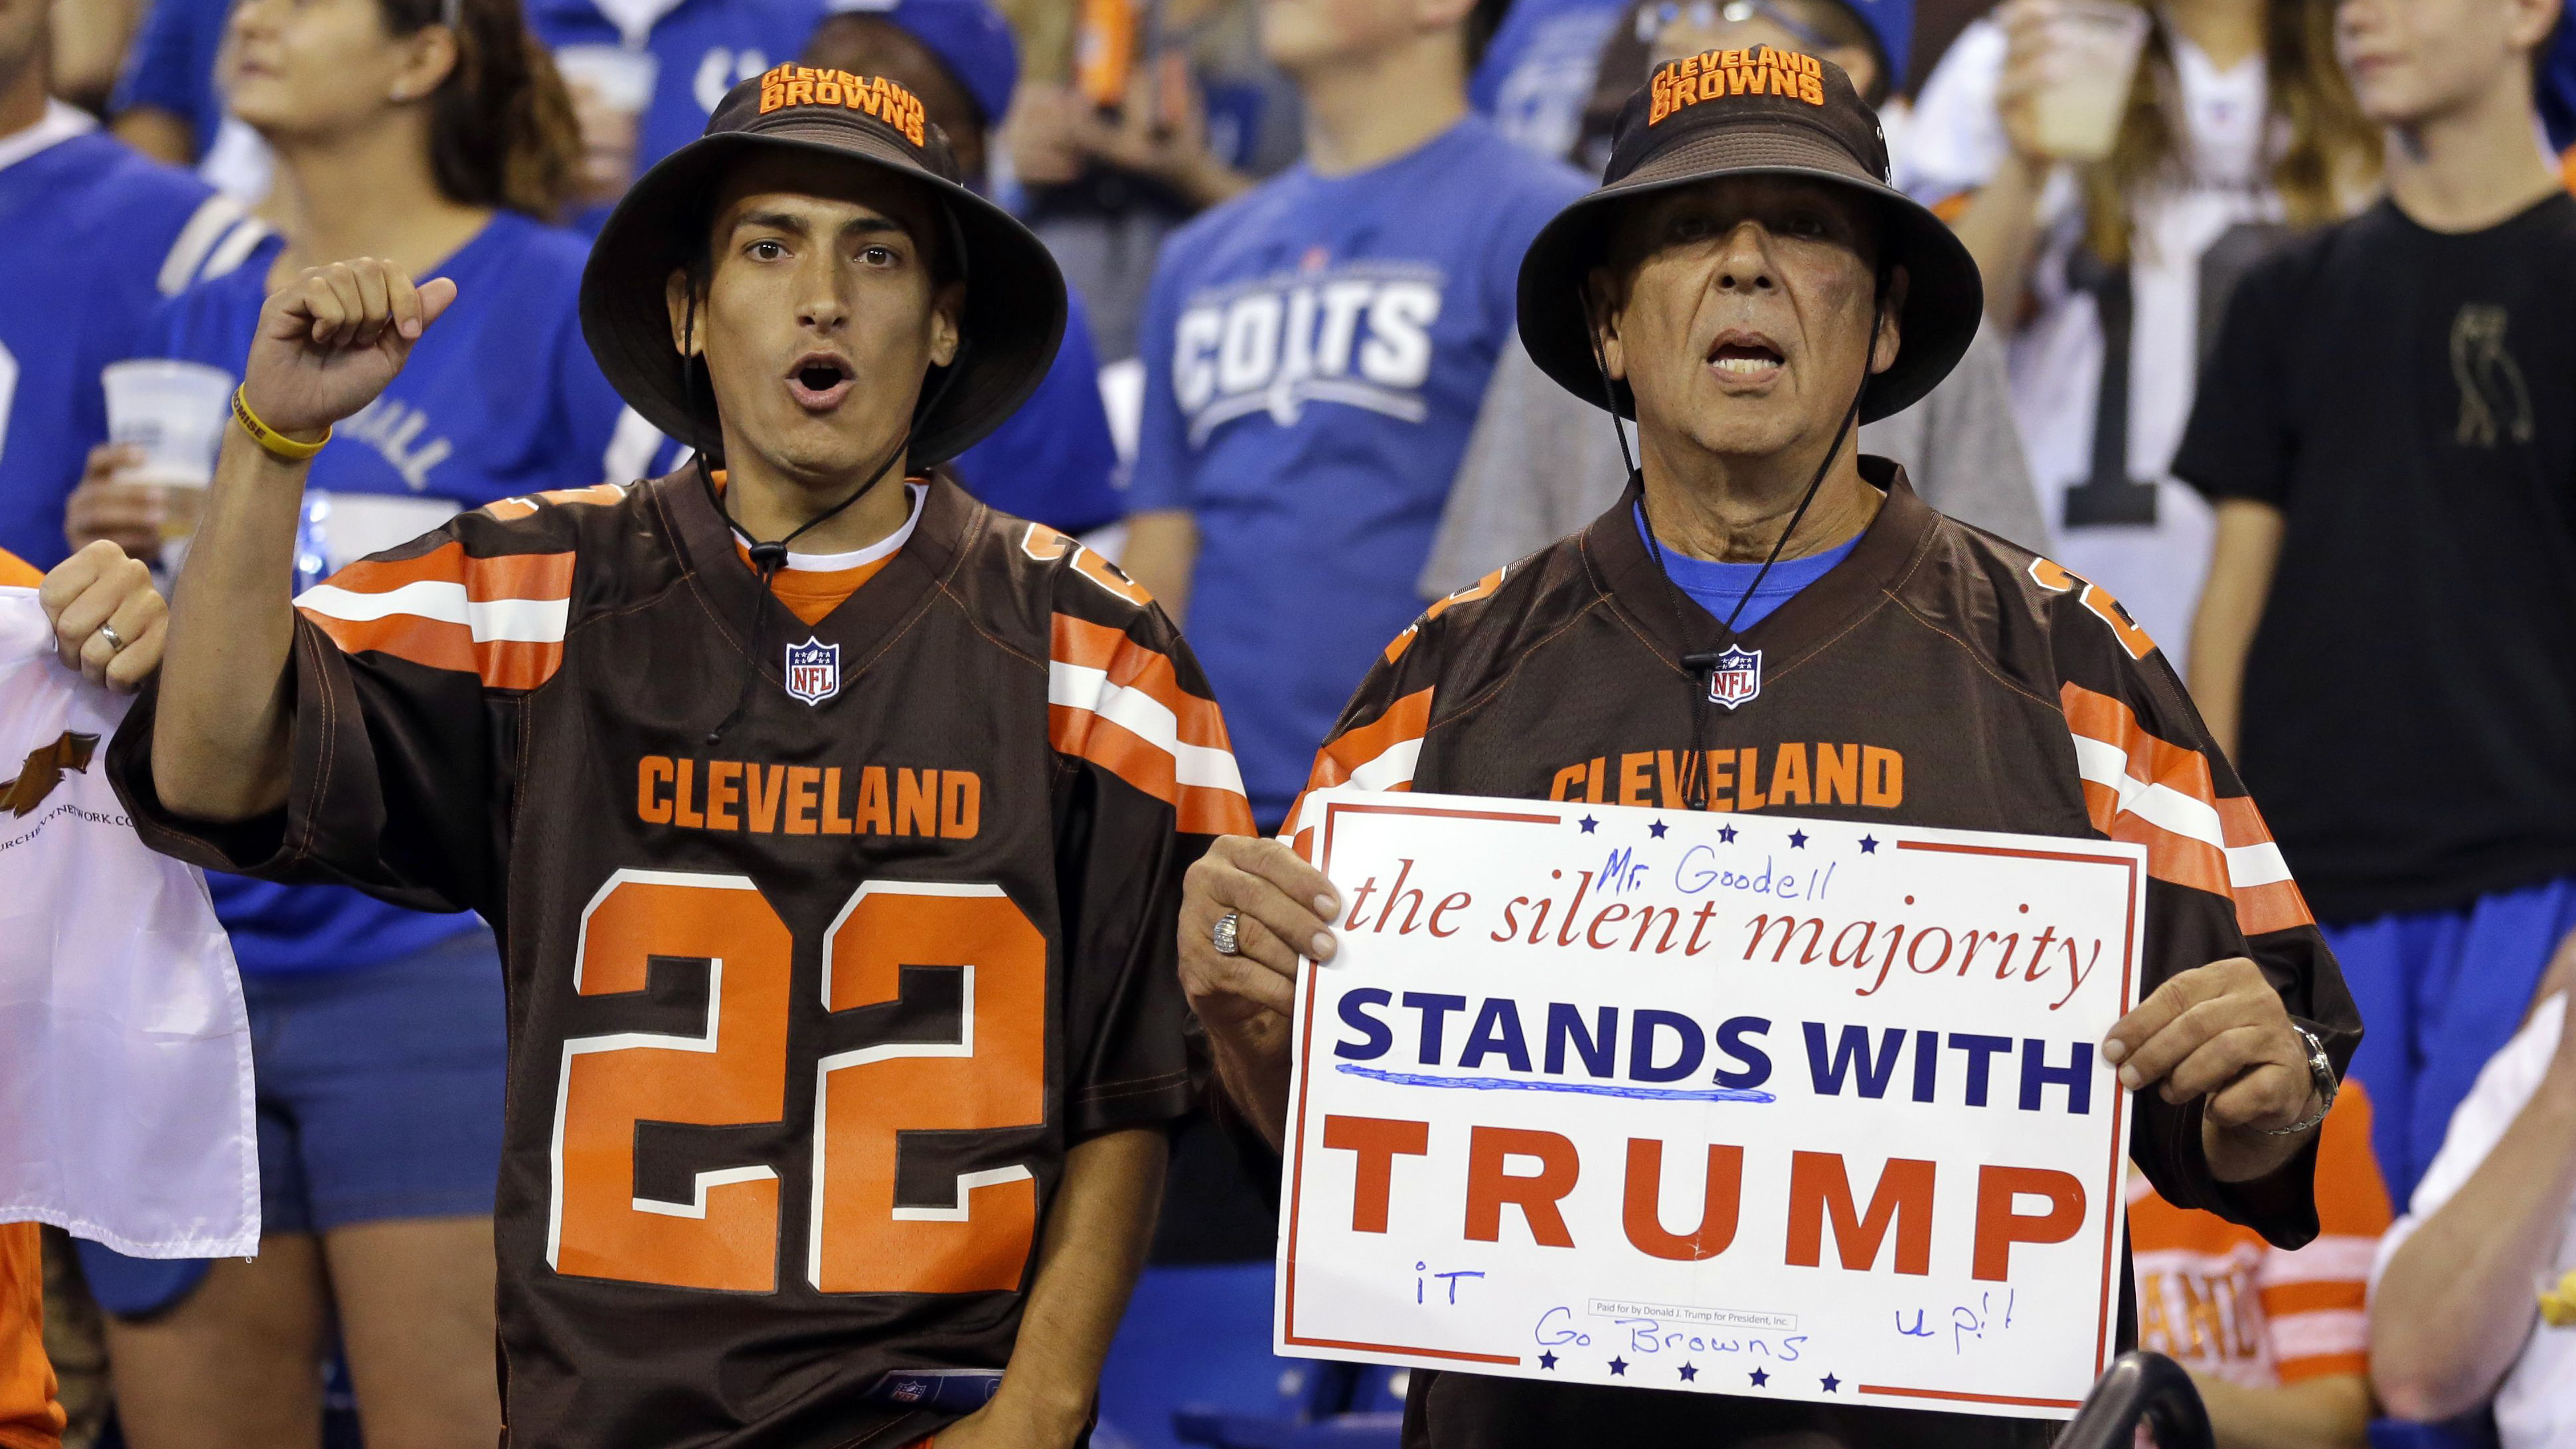 Browns fans who support Trump brought a sign to Lucas Oil Stadium.